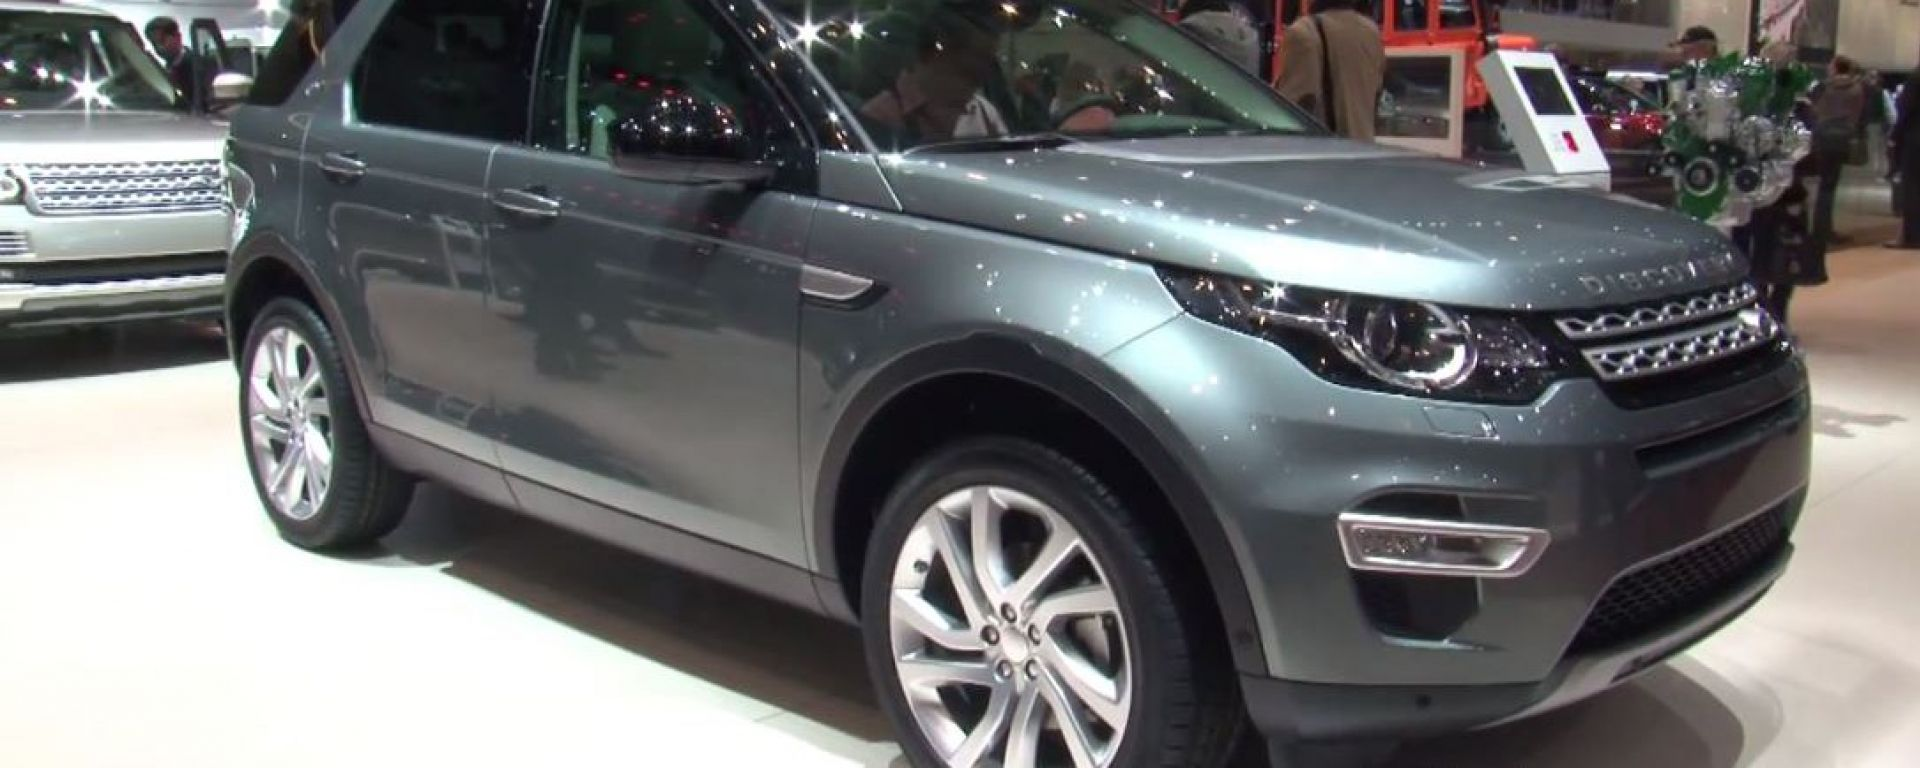 Land Rover: il video dallo stand